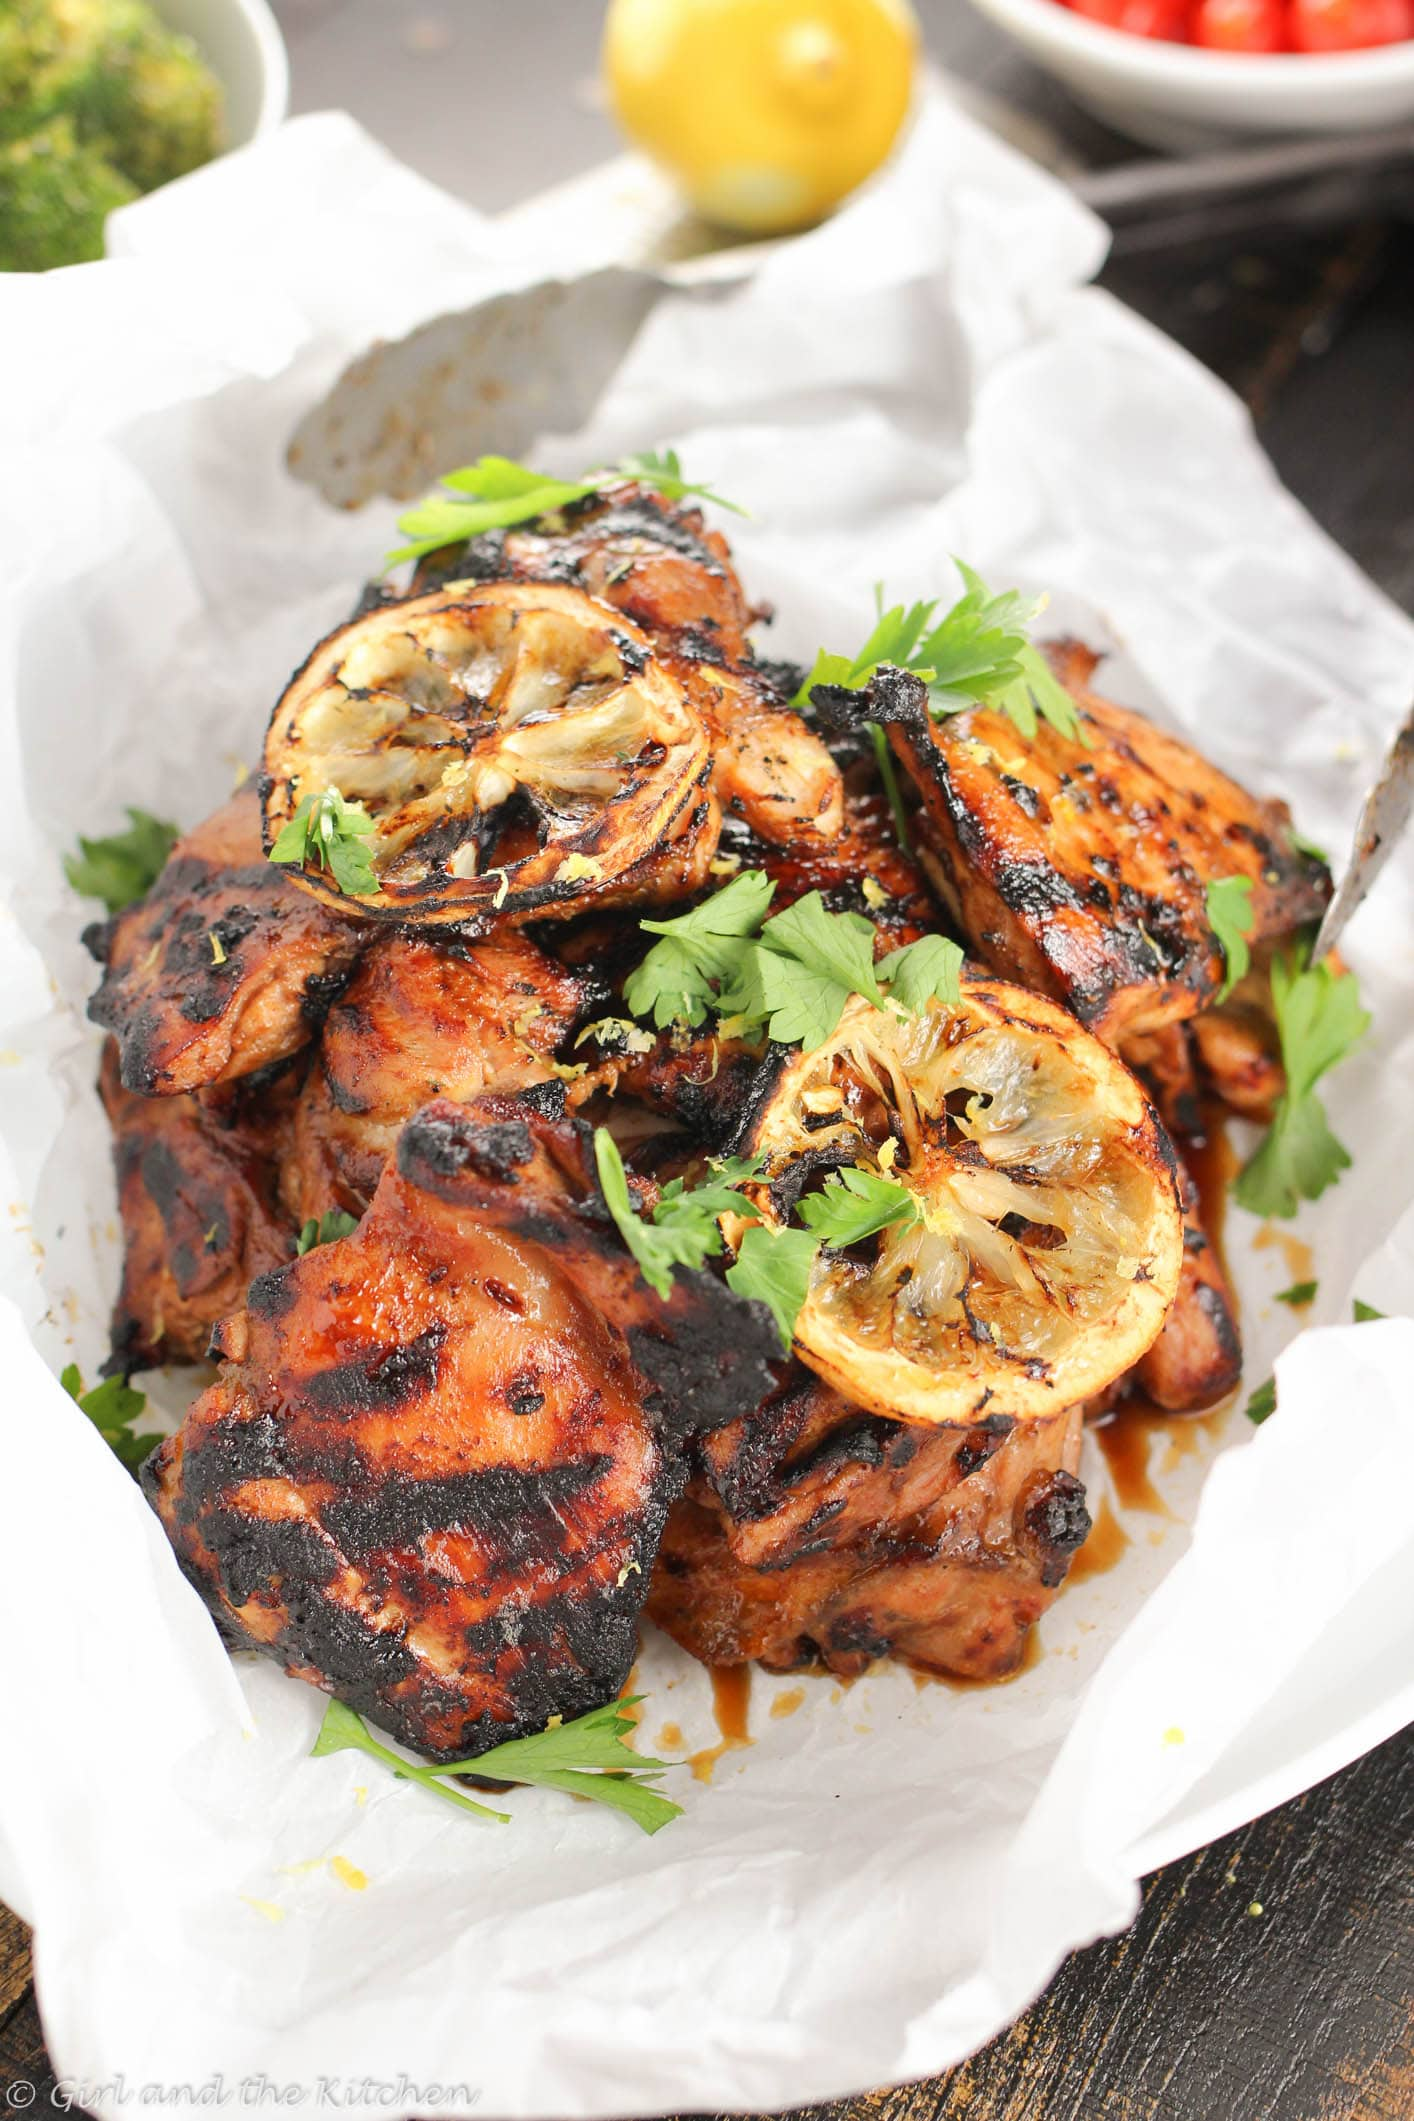 An incredibly easy and uber flavorful grilled chicken recipe full of tangy and smoky flavors all made with an extremely versatile rub!